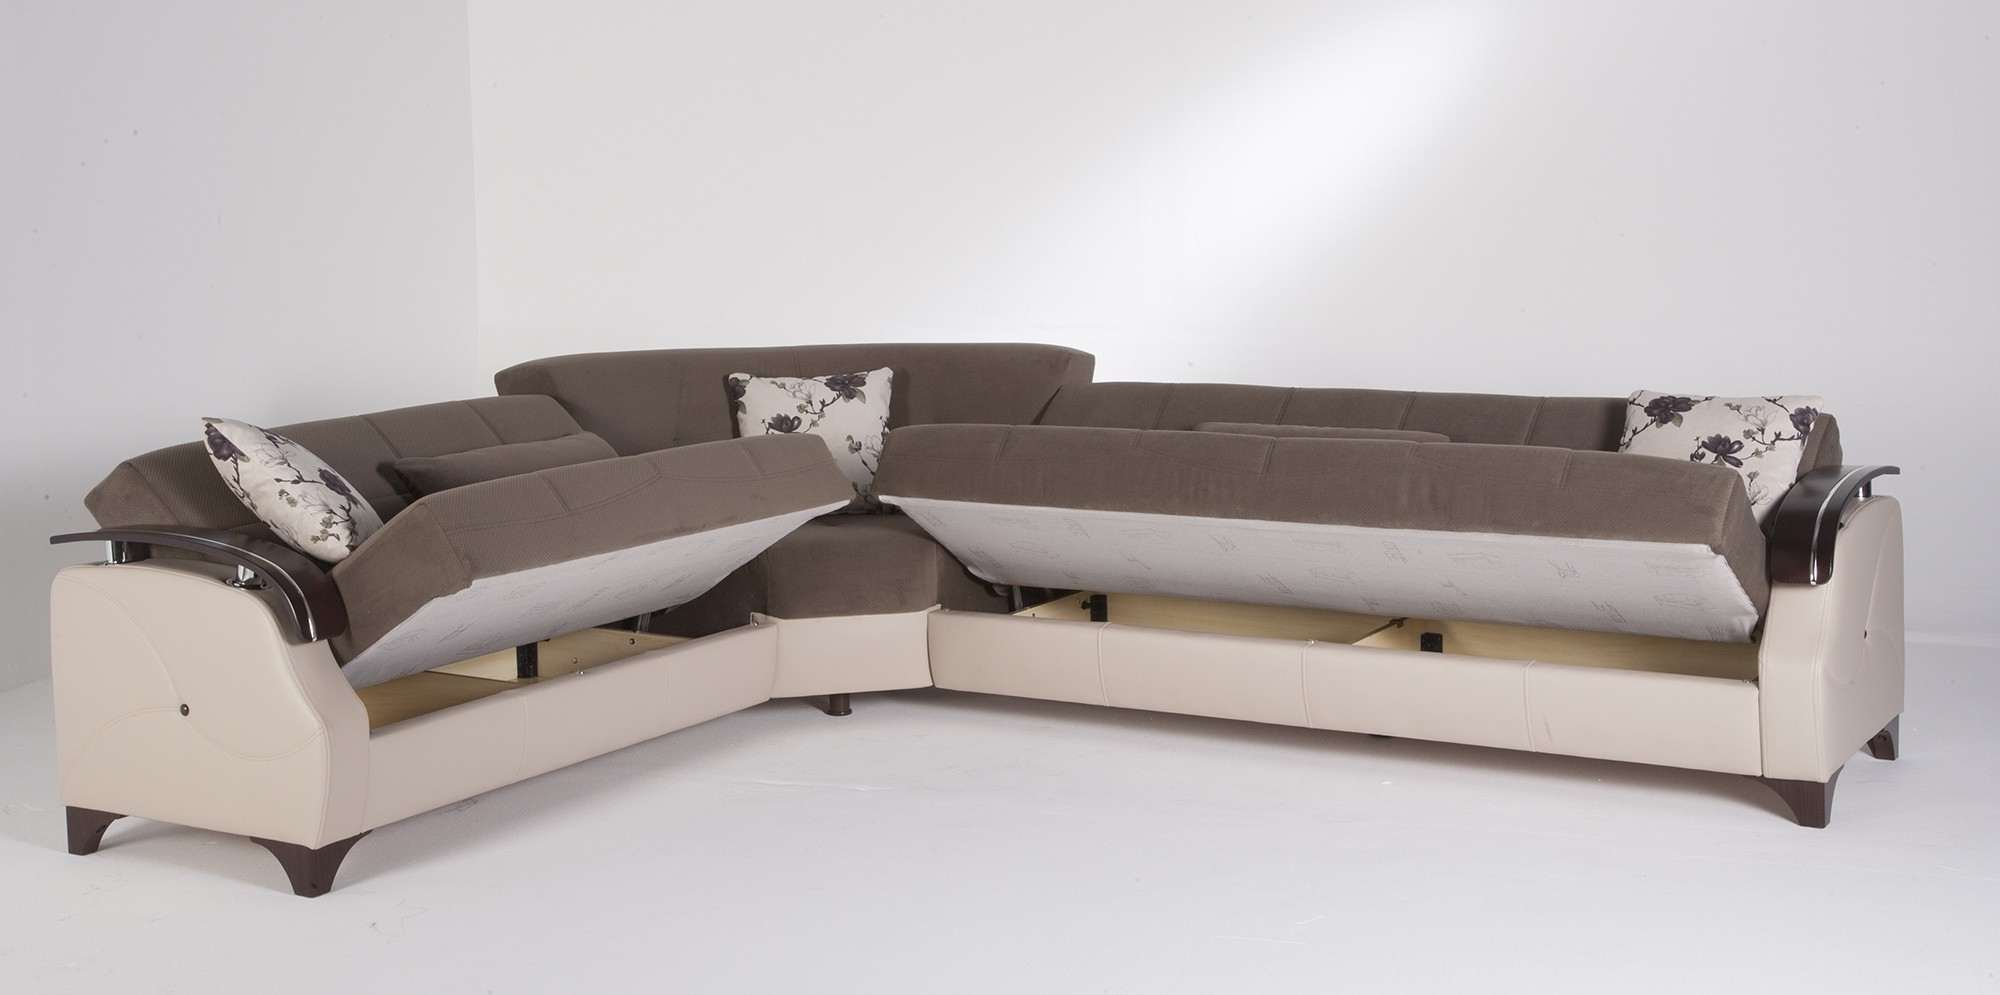 Elegant And Exclusive Modern Sleeper Sofa — The Home Redesign Within Most Recent Sectional Sleeper Sofas With Chaise (View 3 of 15)